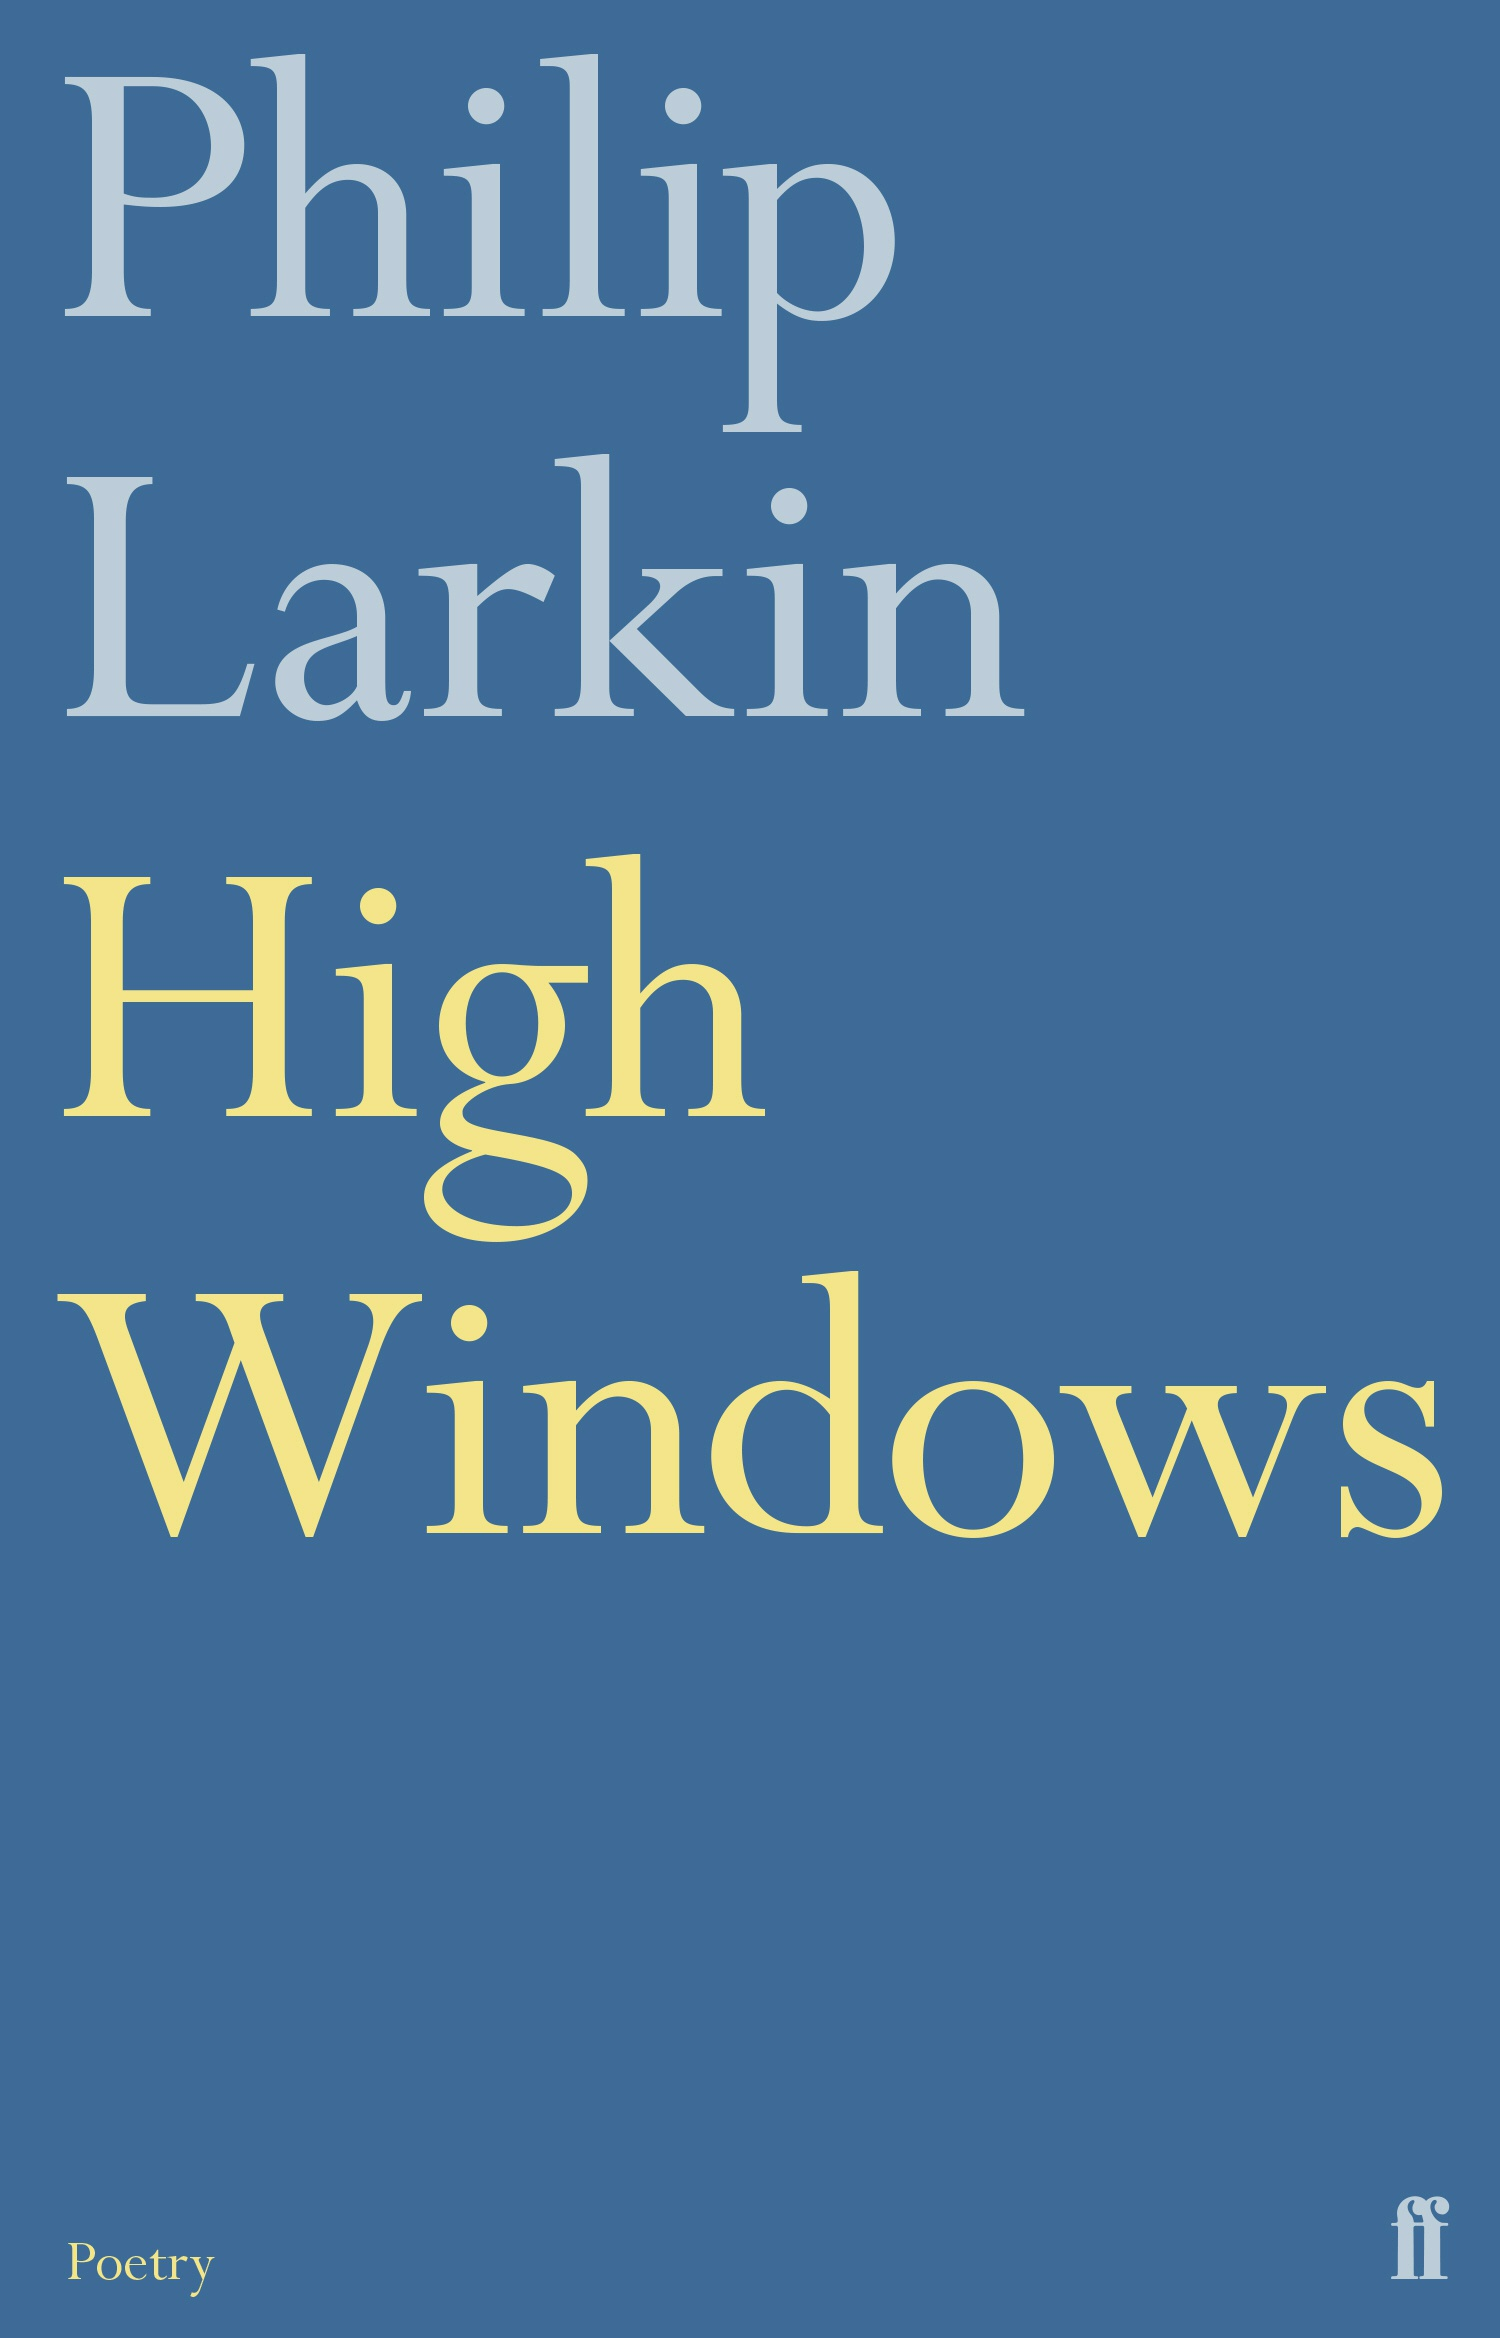 larkin philip comments on this be A midterm – laying in bed, by philip larkin robertsjw3 notify me of follow-up comments by email notify me of new posts by email proudly powered by wordpress.